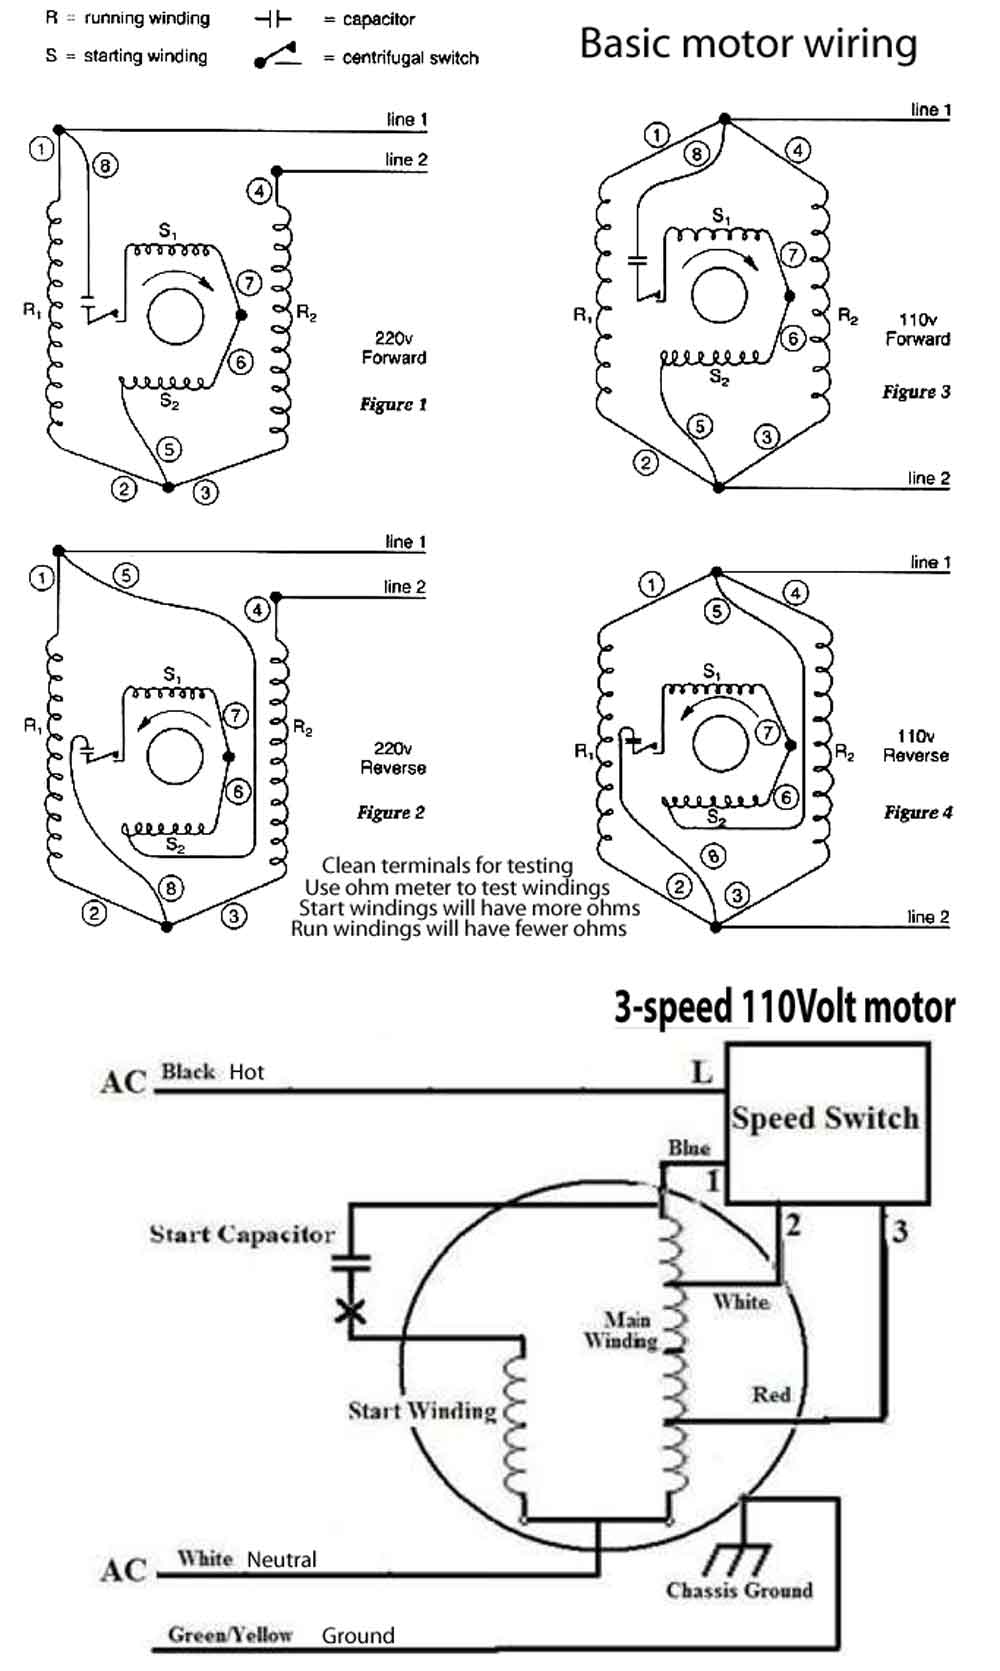 how to wire speed fan switch motor wiring